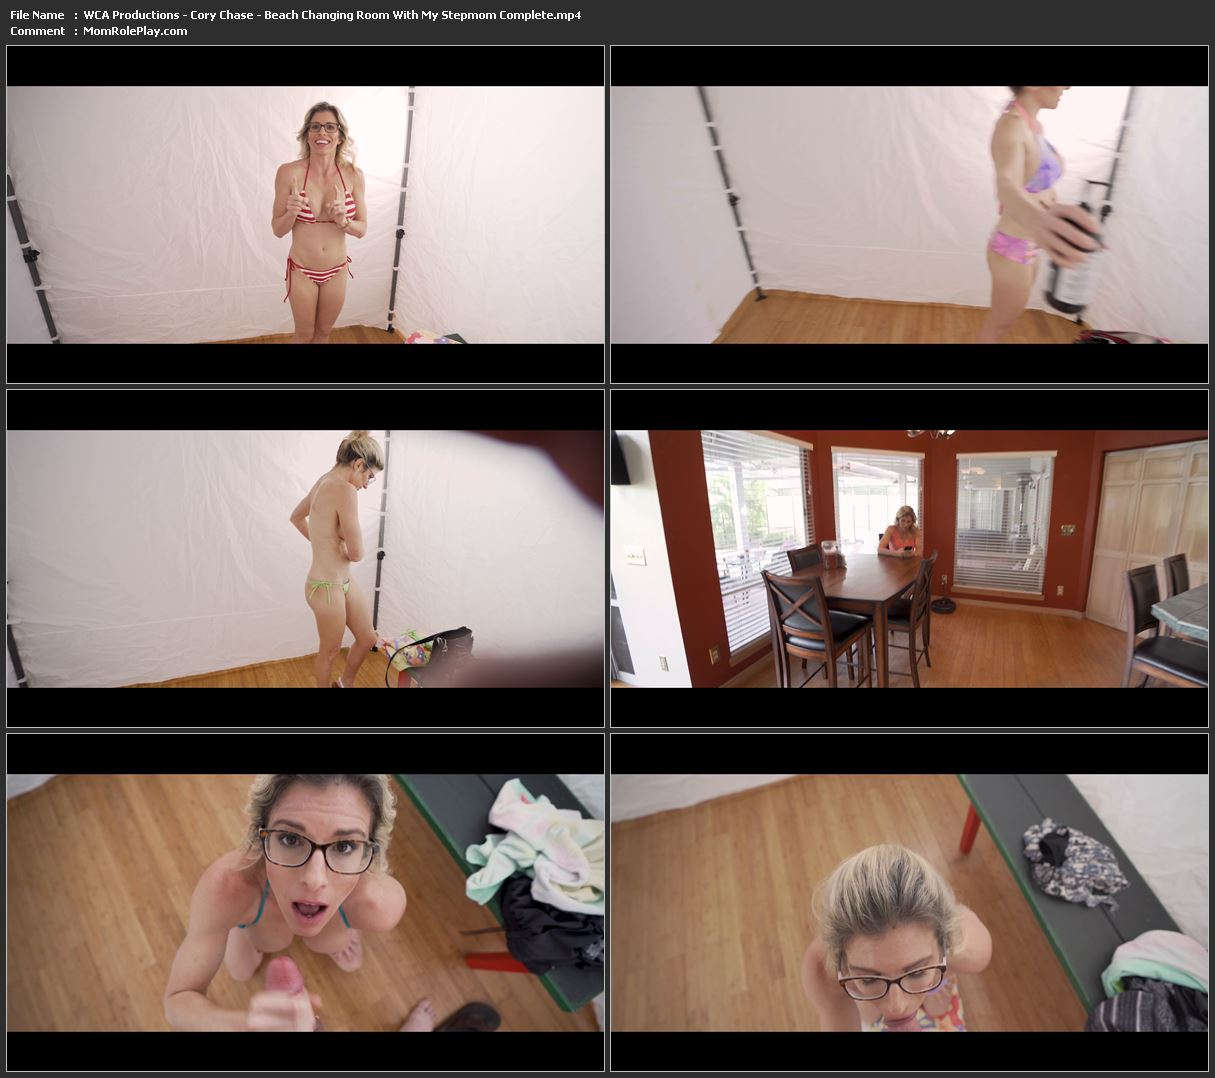 WCA Productions - Cory Chase - Beach Changing Room With My Stepmom Complete